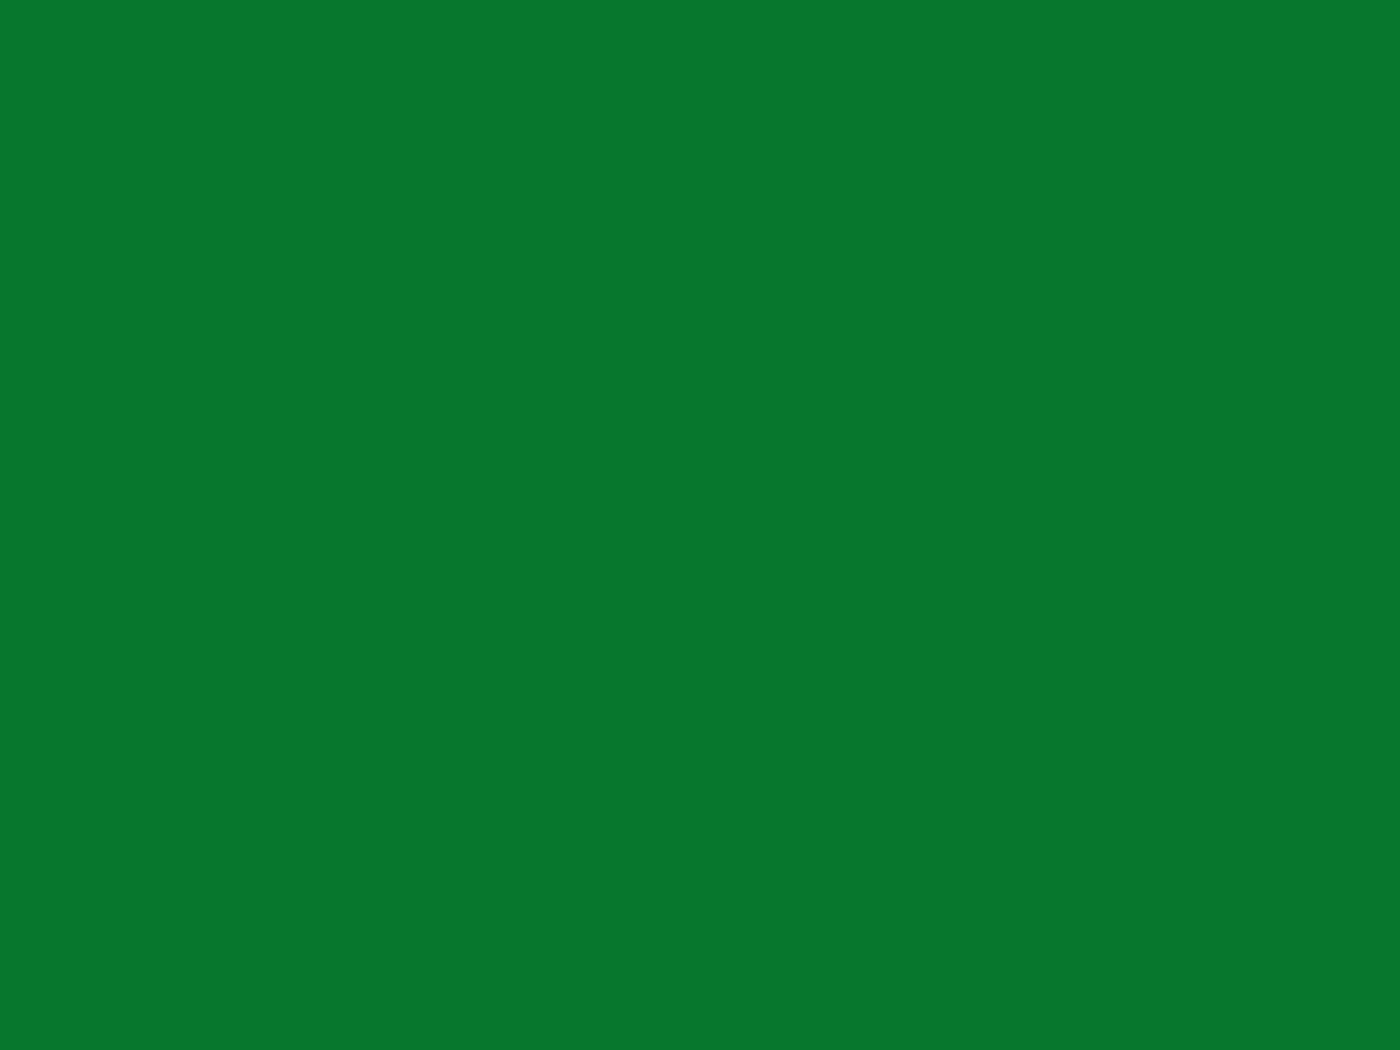 1400x1050 La Salle Green Solid Color Background